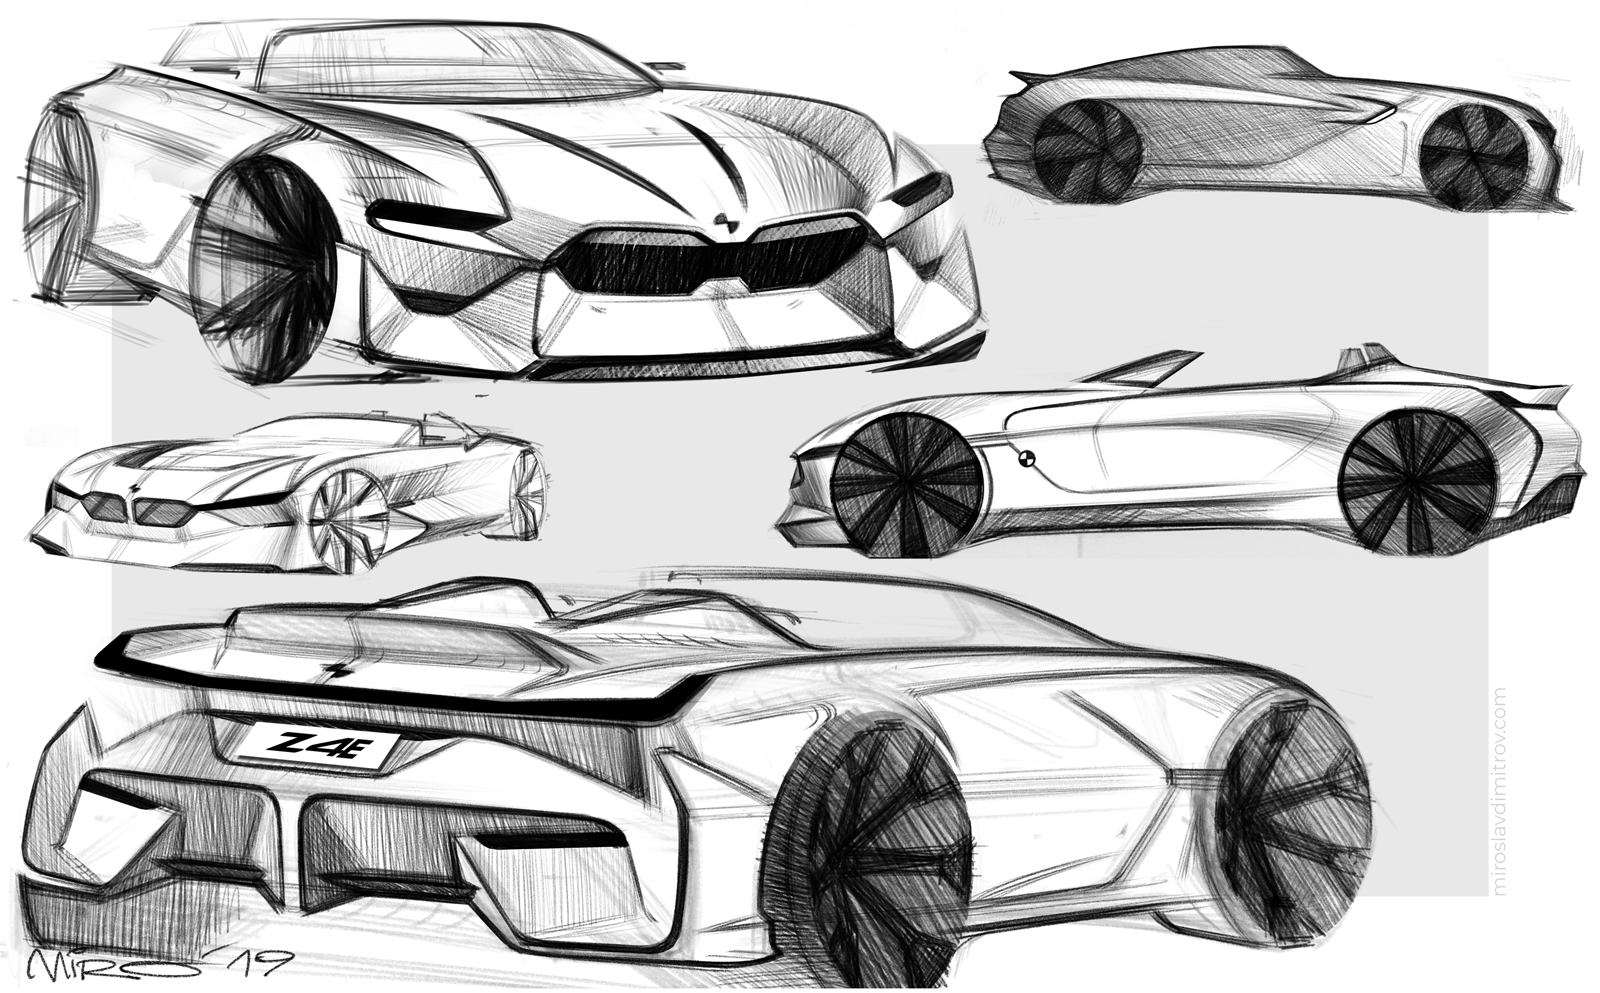 BMW Z4 Electric, Design Sketch © 2019 Miroslav Dimitrov